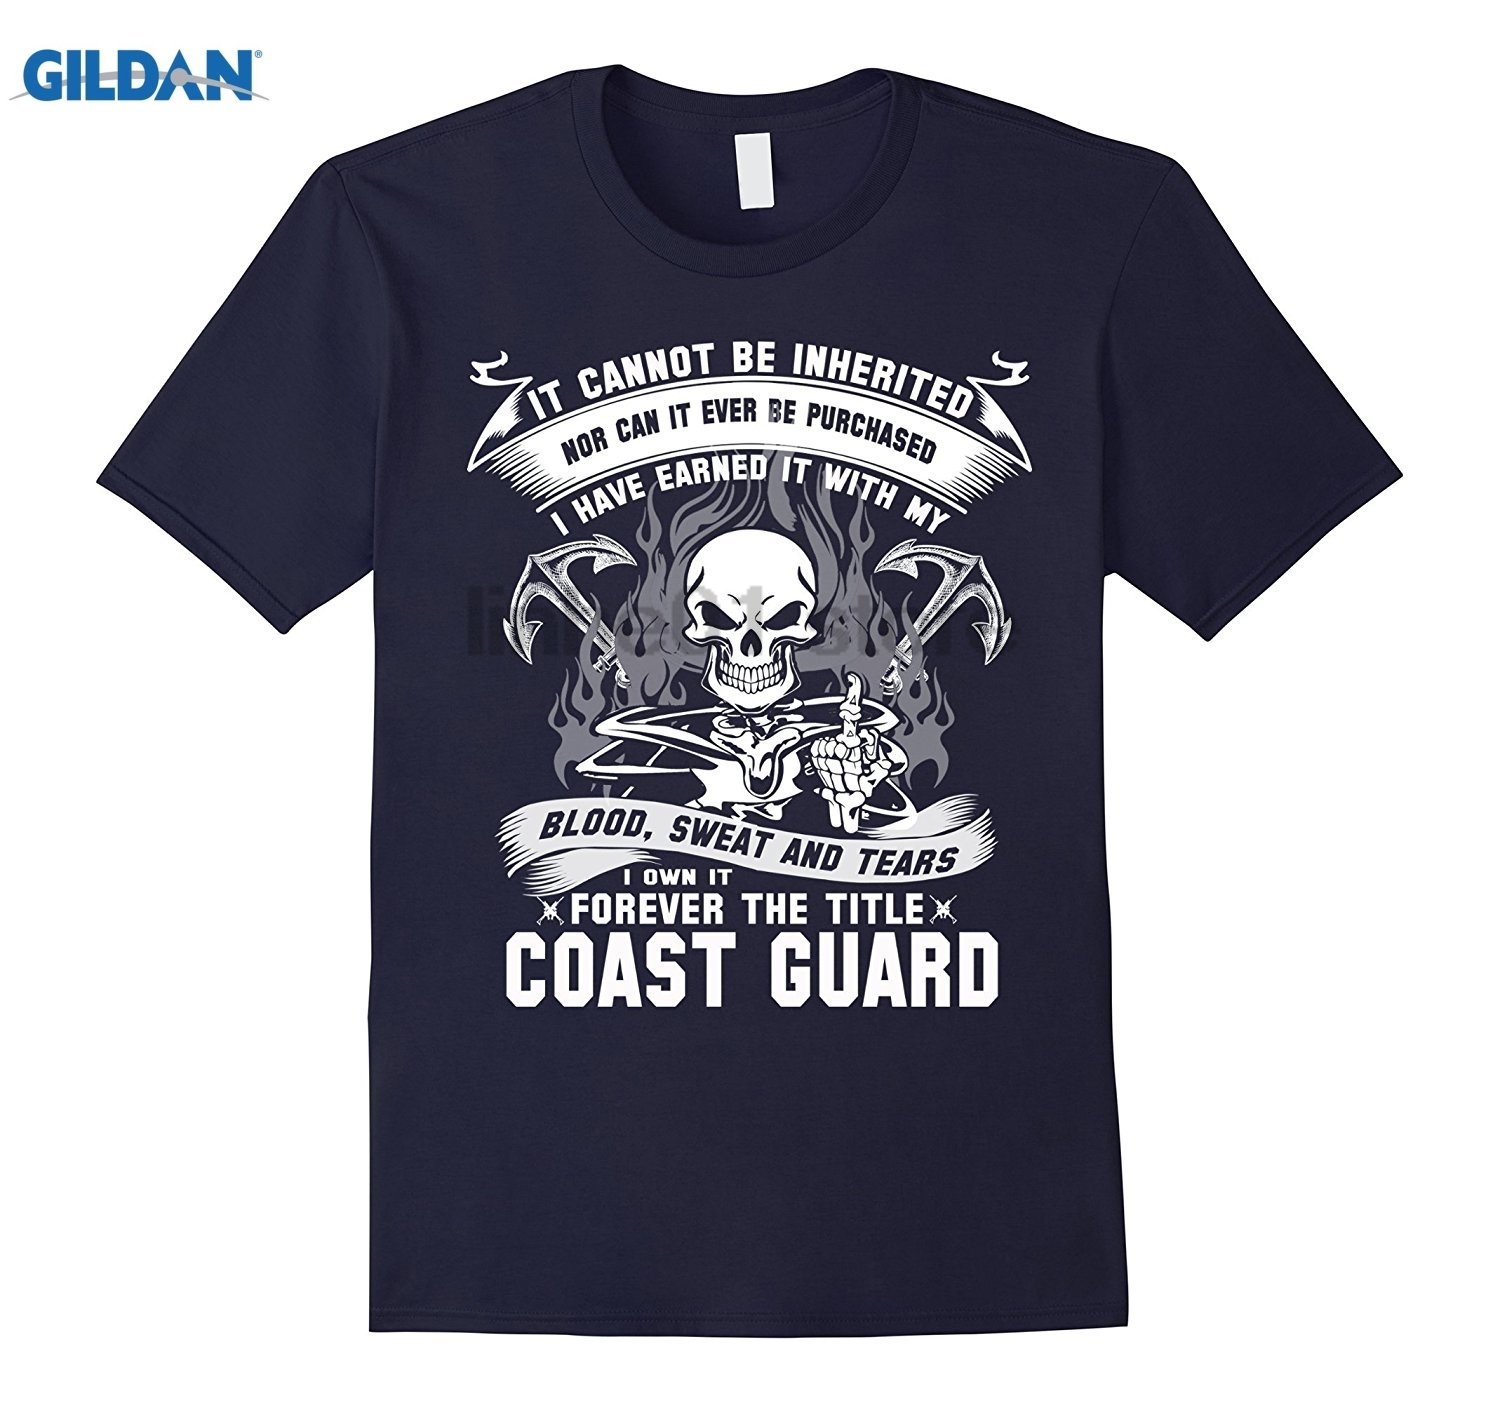 GILDAN coast guard T-shirt , it cannot be inherited nor can it ever sunglasses women T-shirt